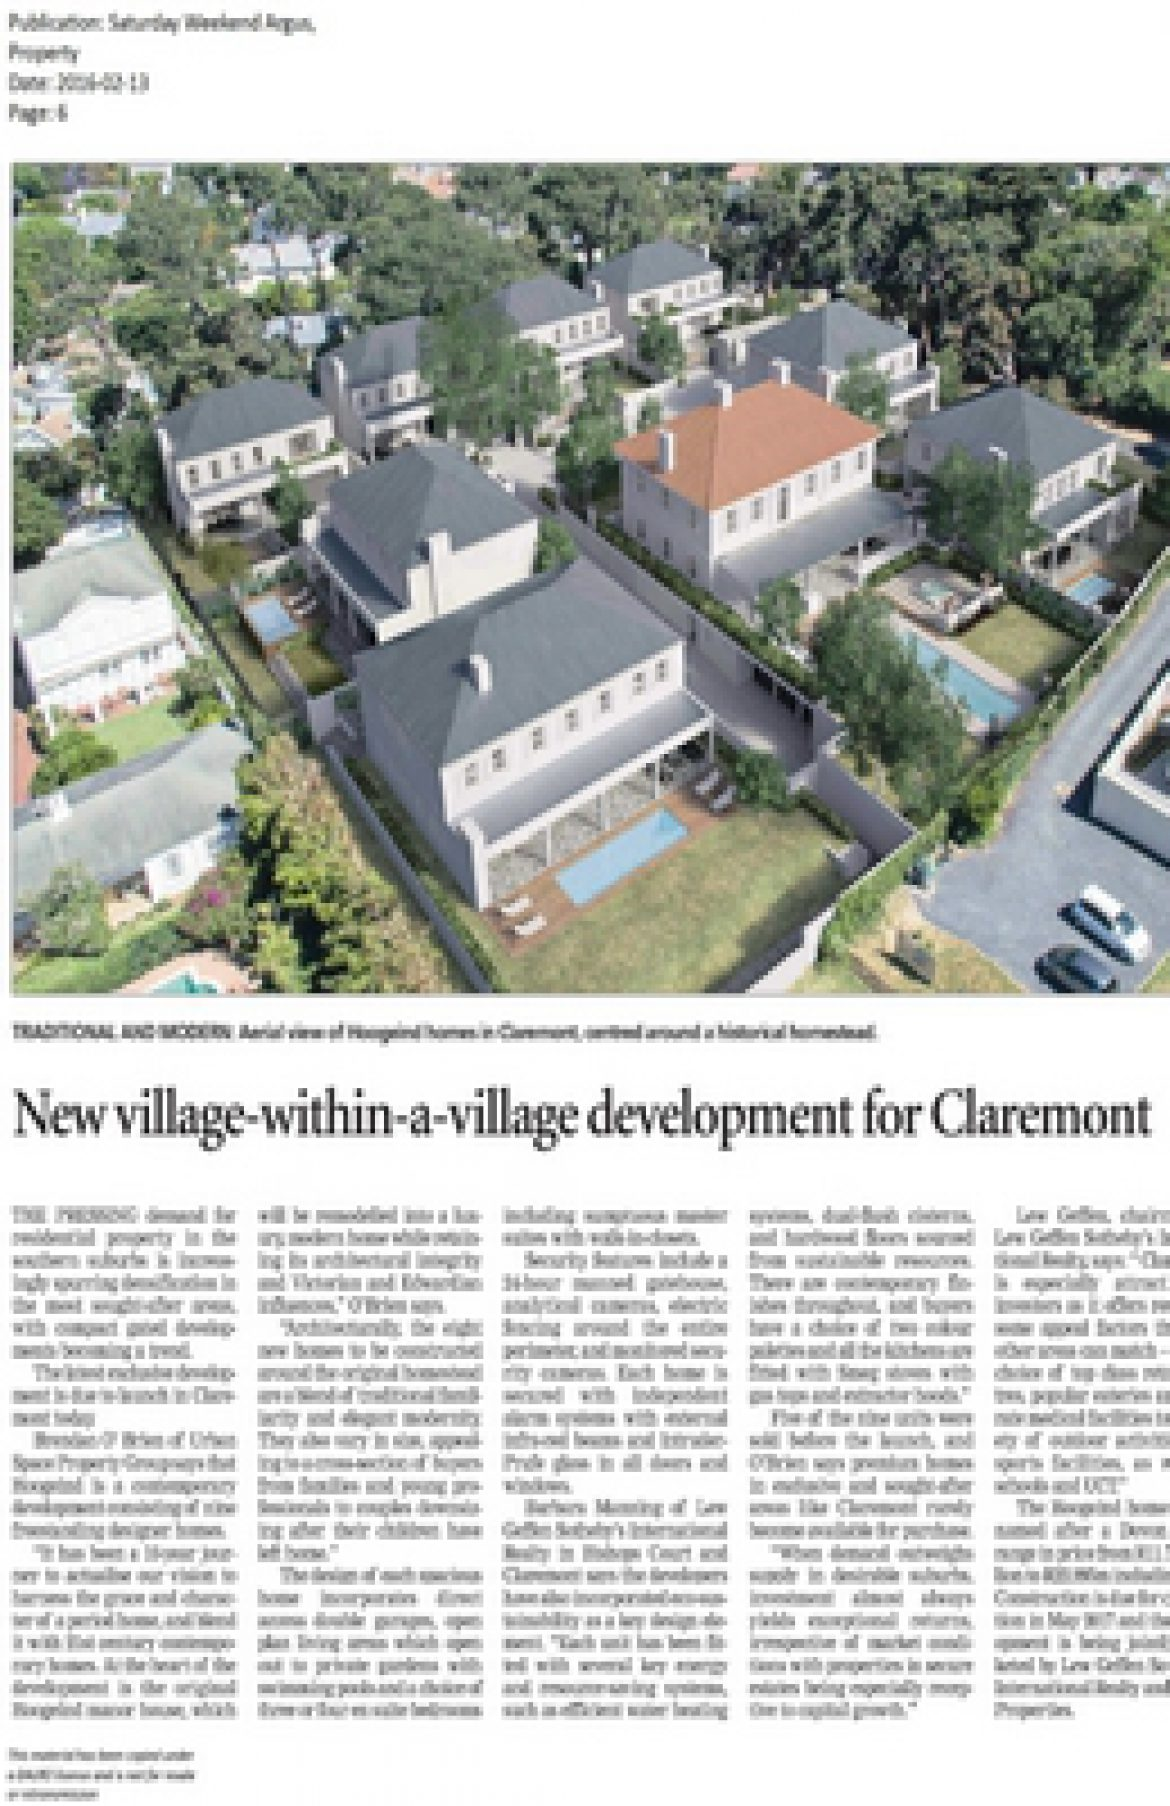 New village-within-a-village development for Claremont